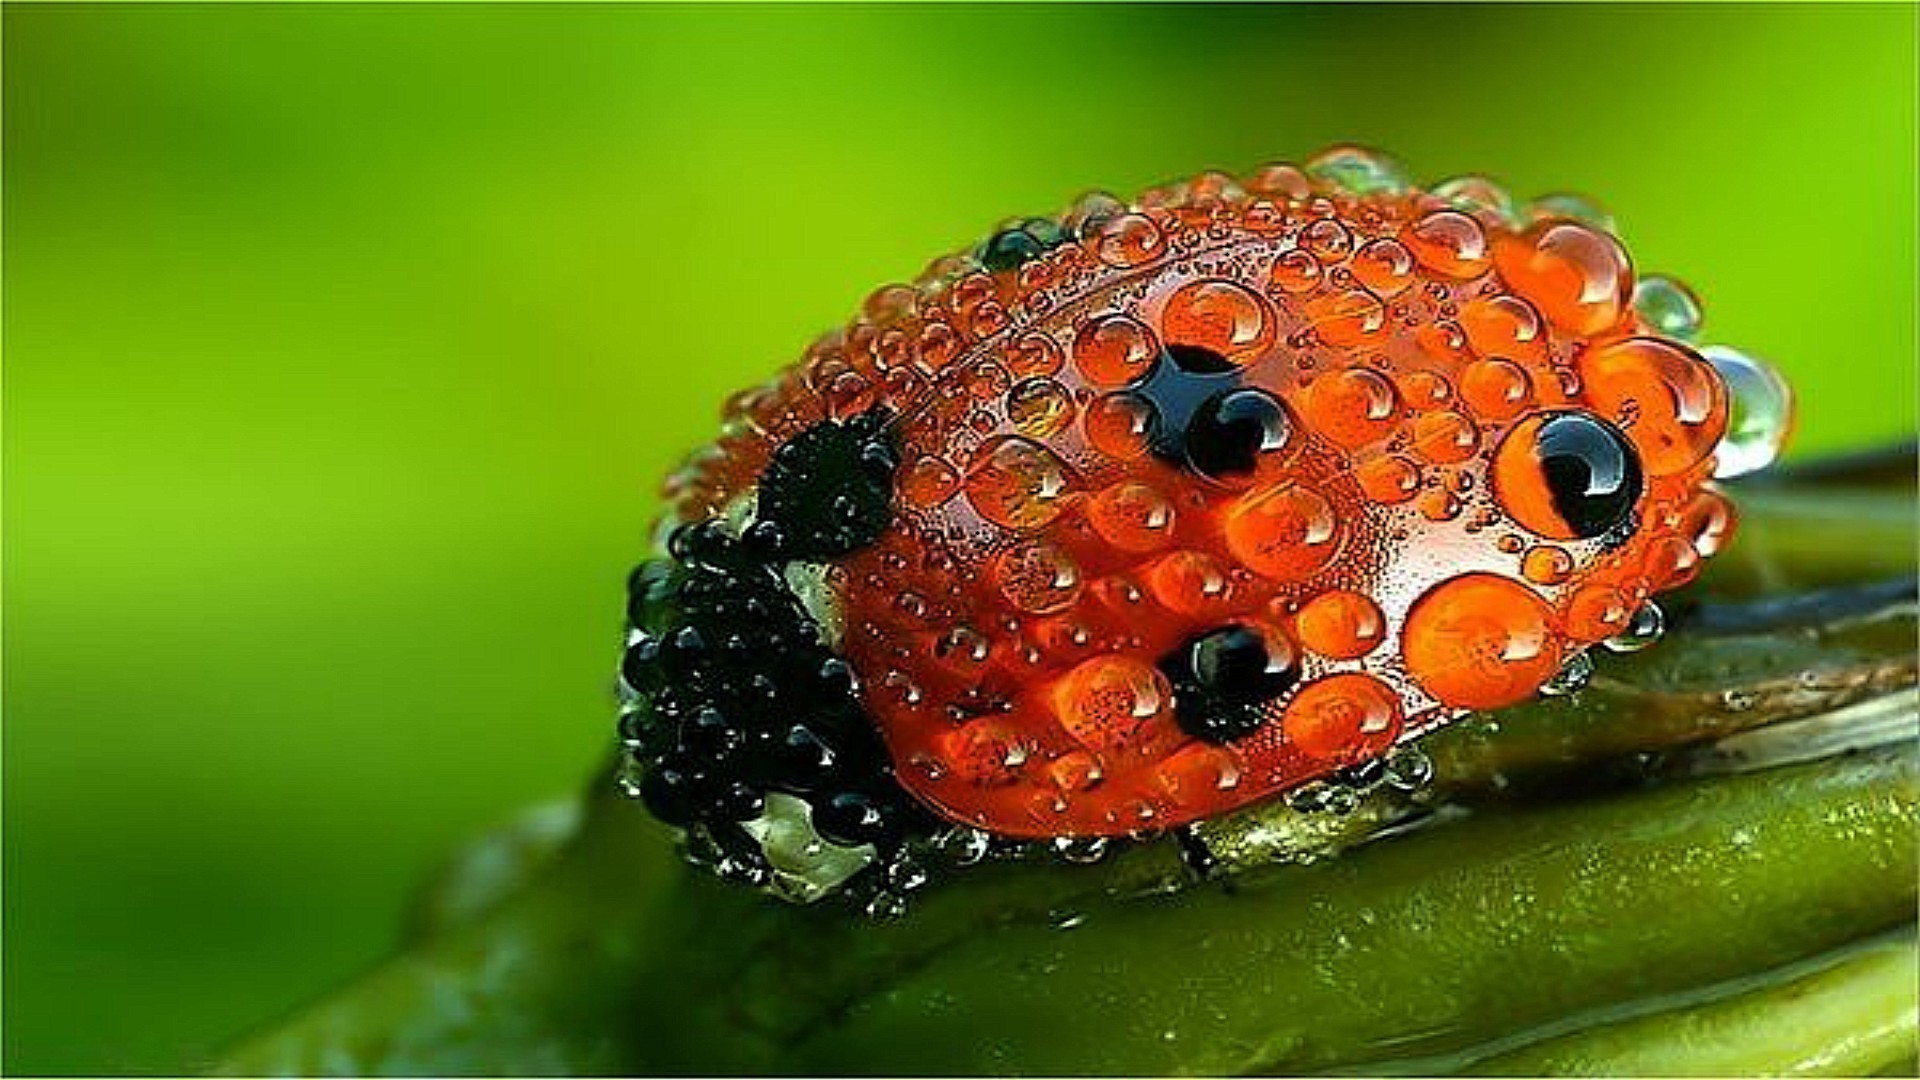 insects close-up nature desktop color food leaf garden close fruit flora bright